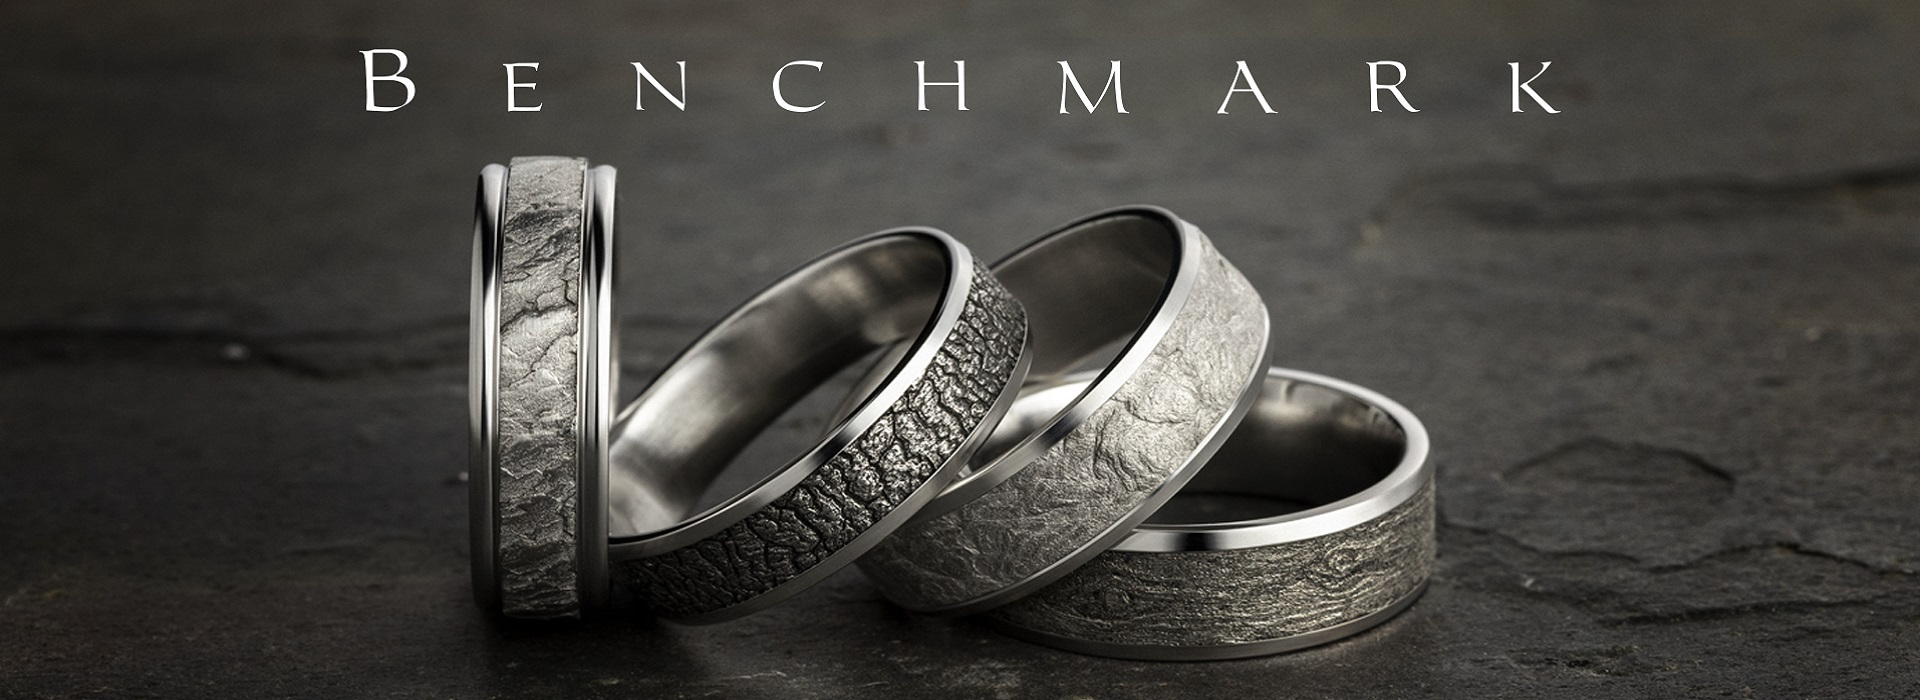 Benchmark Rings